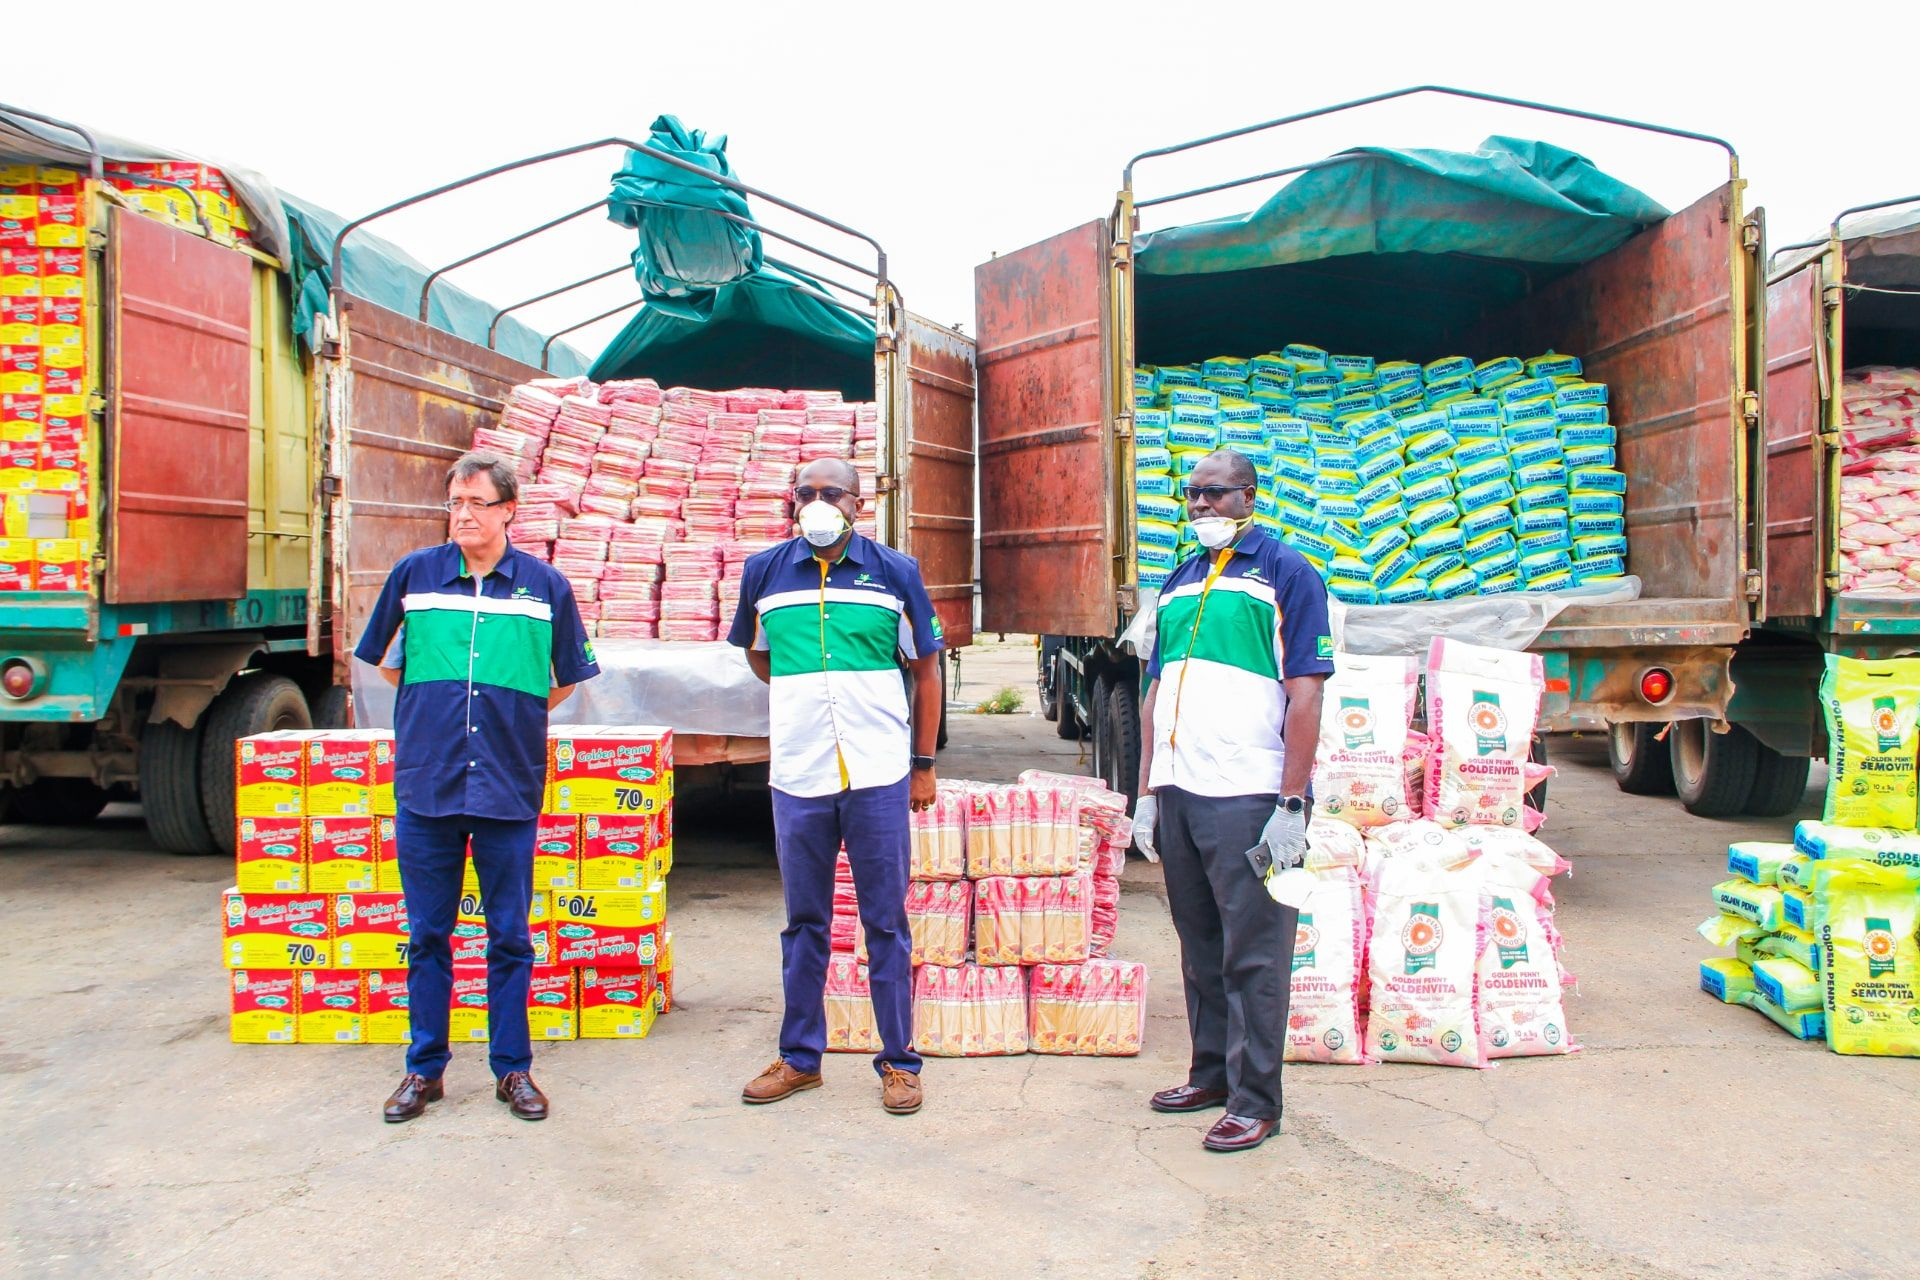 COVID 19 – FMN REITERATES ITS COMMITMENT TO FEEDING THE NATION, EVEN IN TOUGH TIMES. DONATES GOLDEN PENNY FOOD PRODUCTS ACROSS THE COUNTRY.